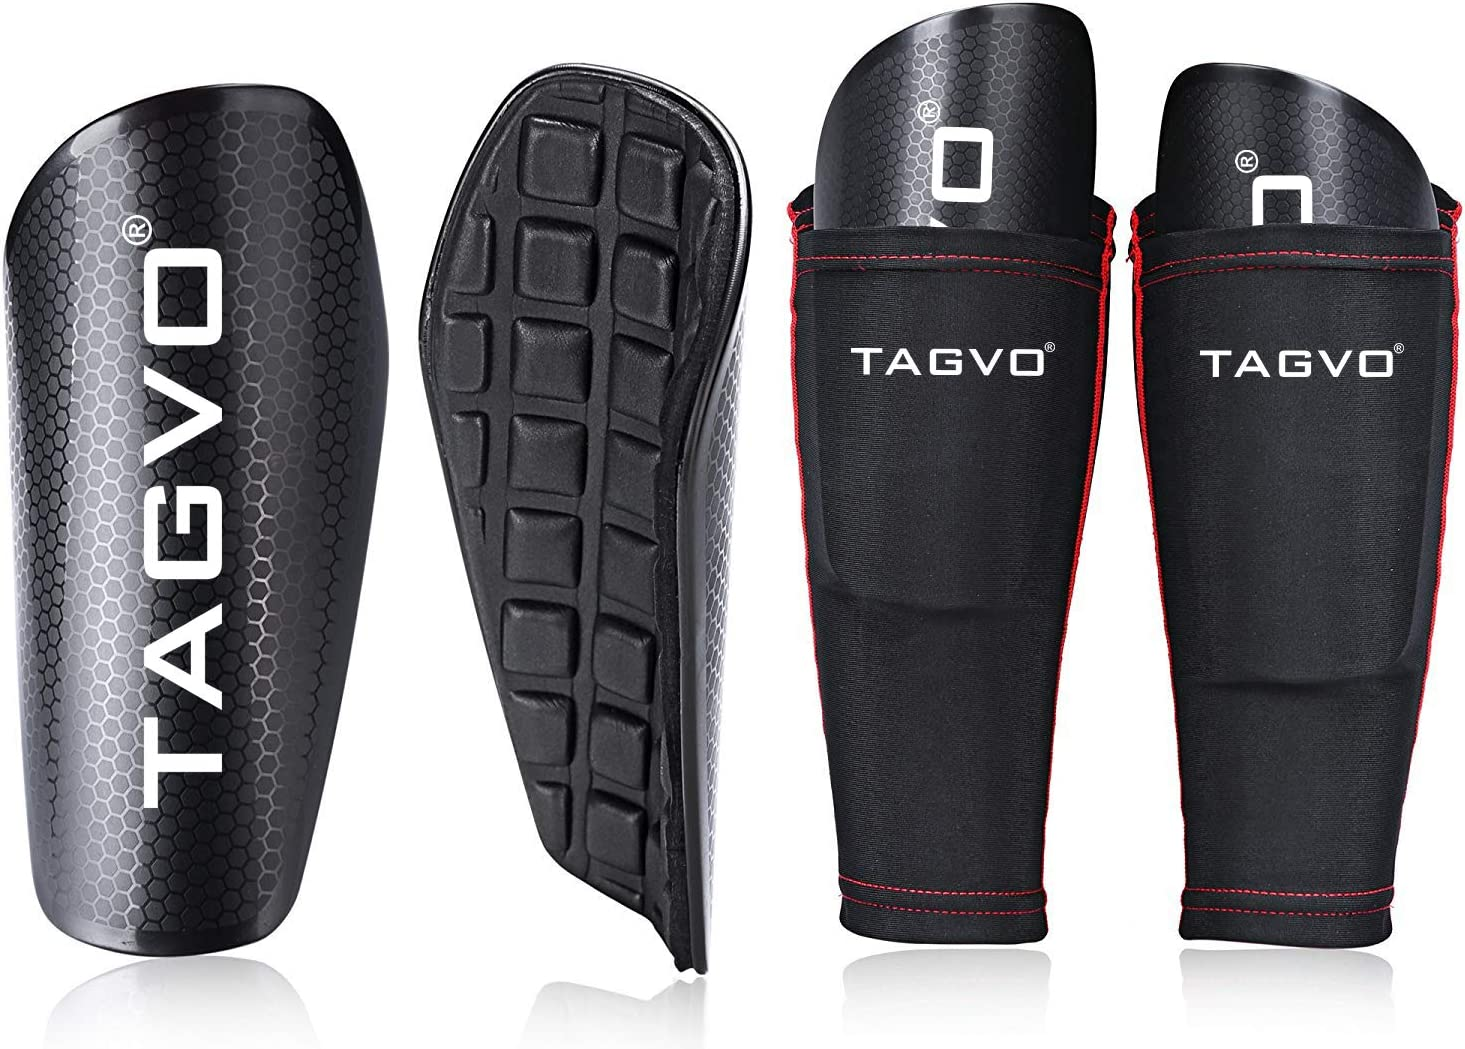 TAGVO Soccer Shin Guards Youth with Pocketed Compression Calf Sleeves, Kids Soccer Equipment Youth Sizes Performance Soccer Shin Pads for Boys Girls : Sports & Outdoors